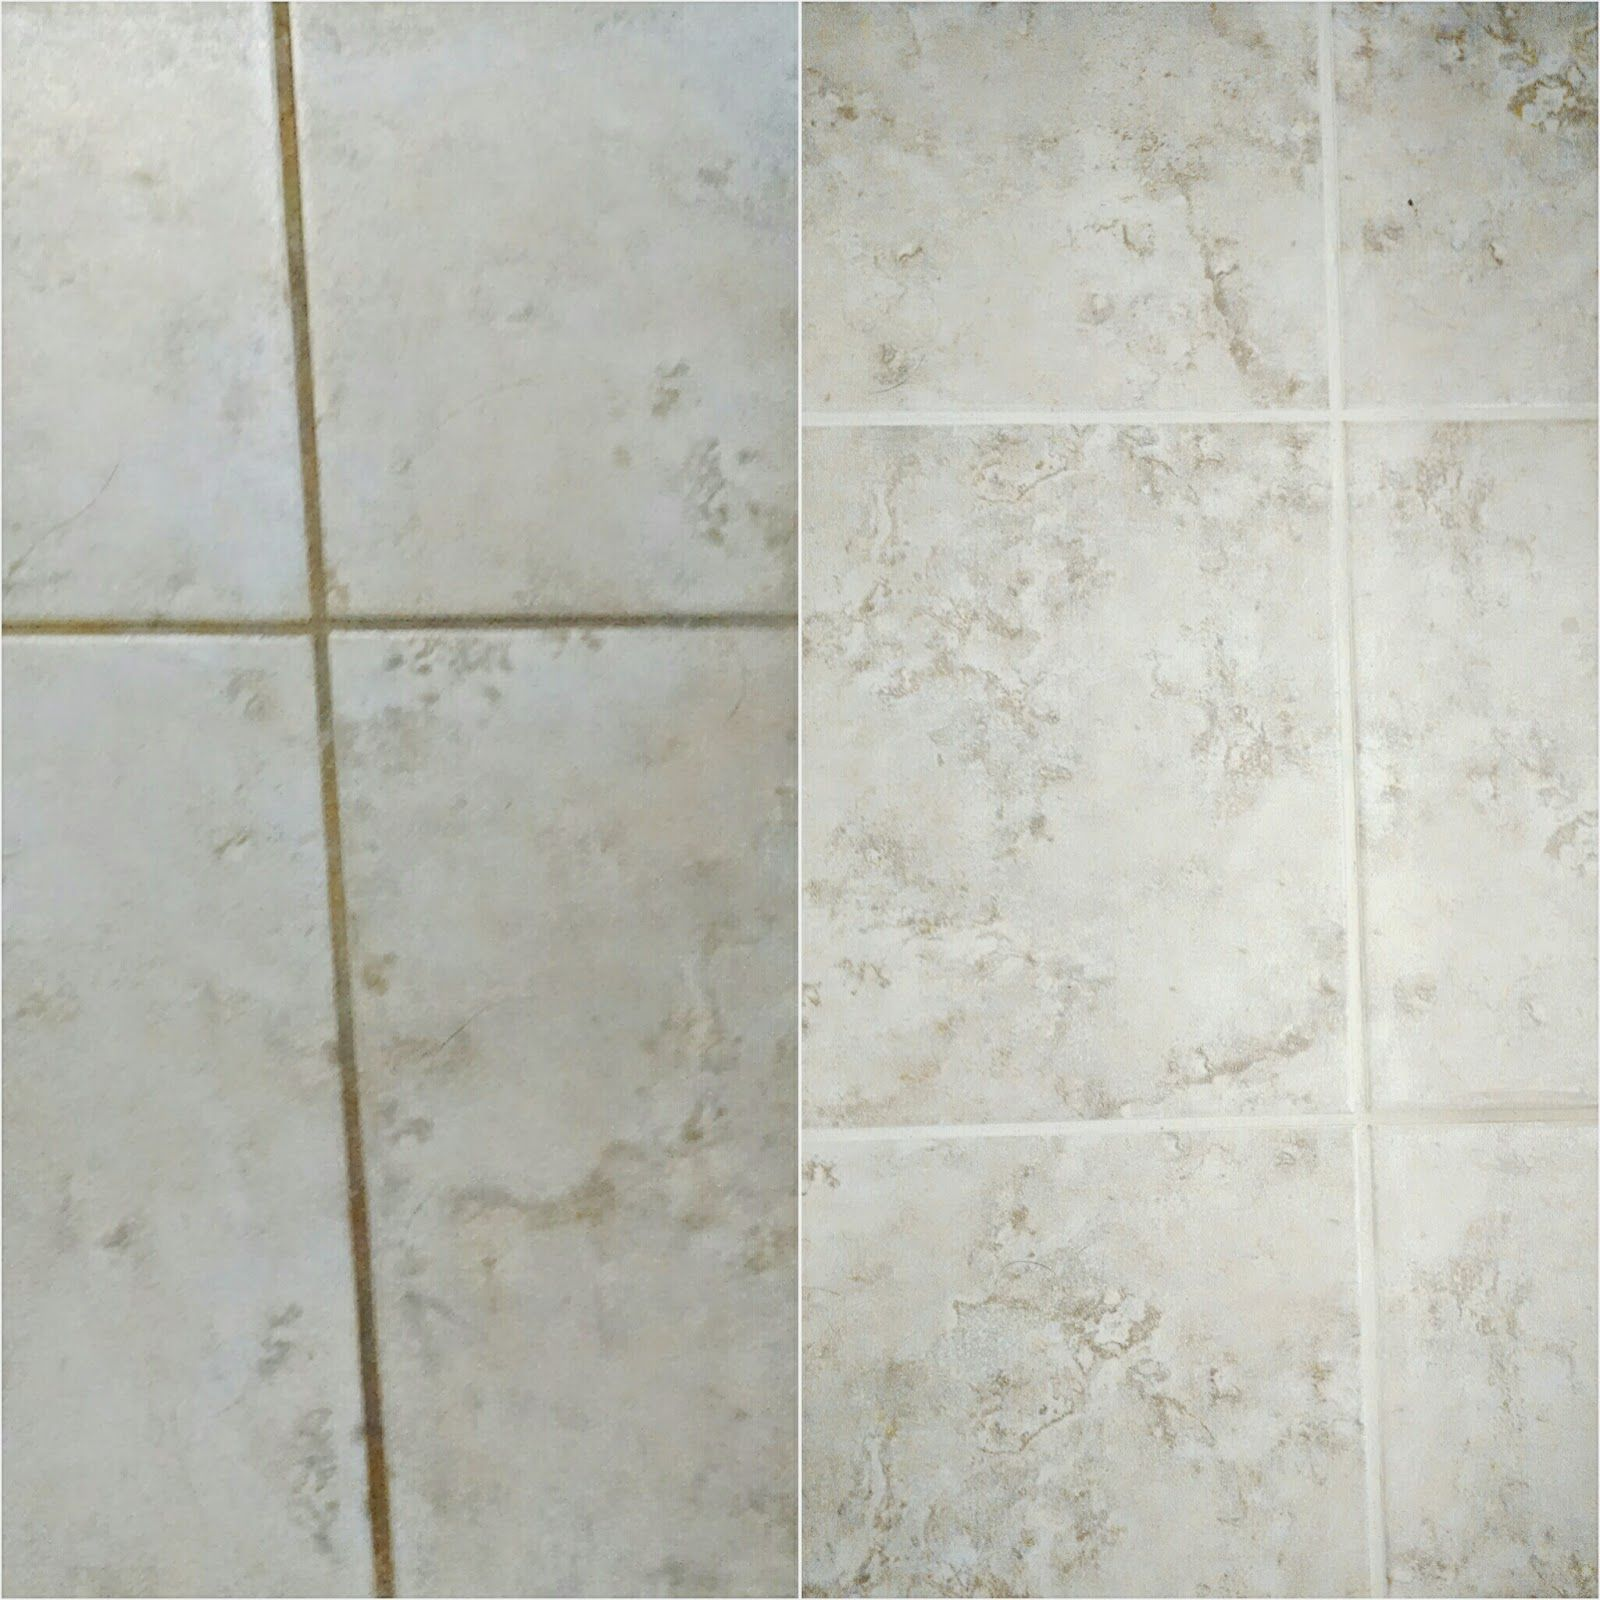 Treadway Made Polyblend Grout Renew Grout Renew Polyblend Grout Renew Cement Grout